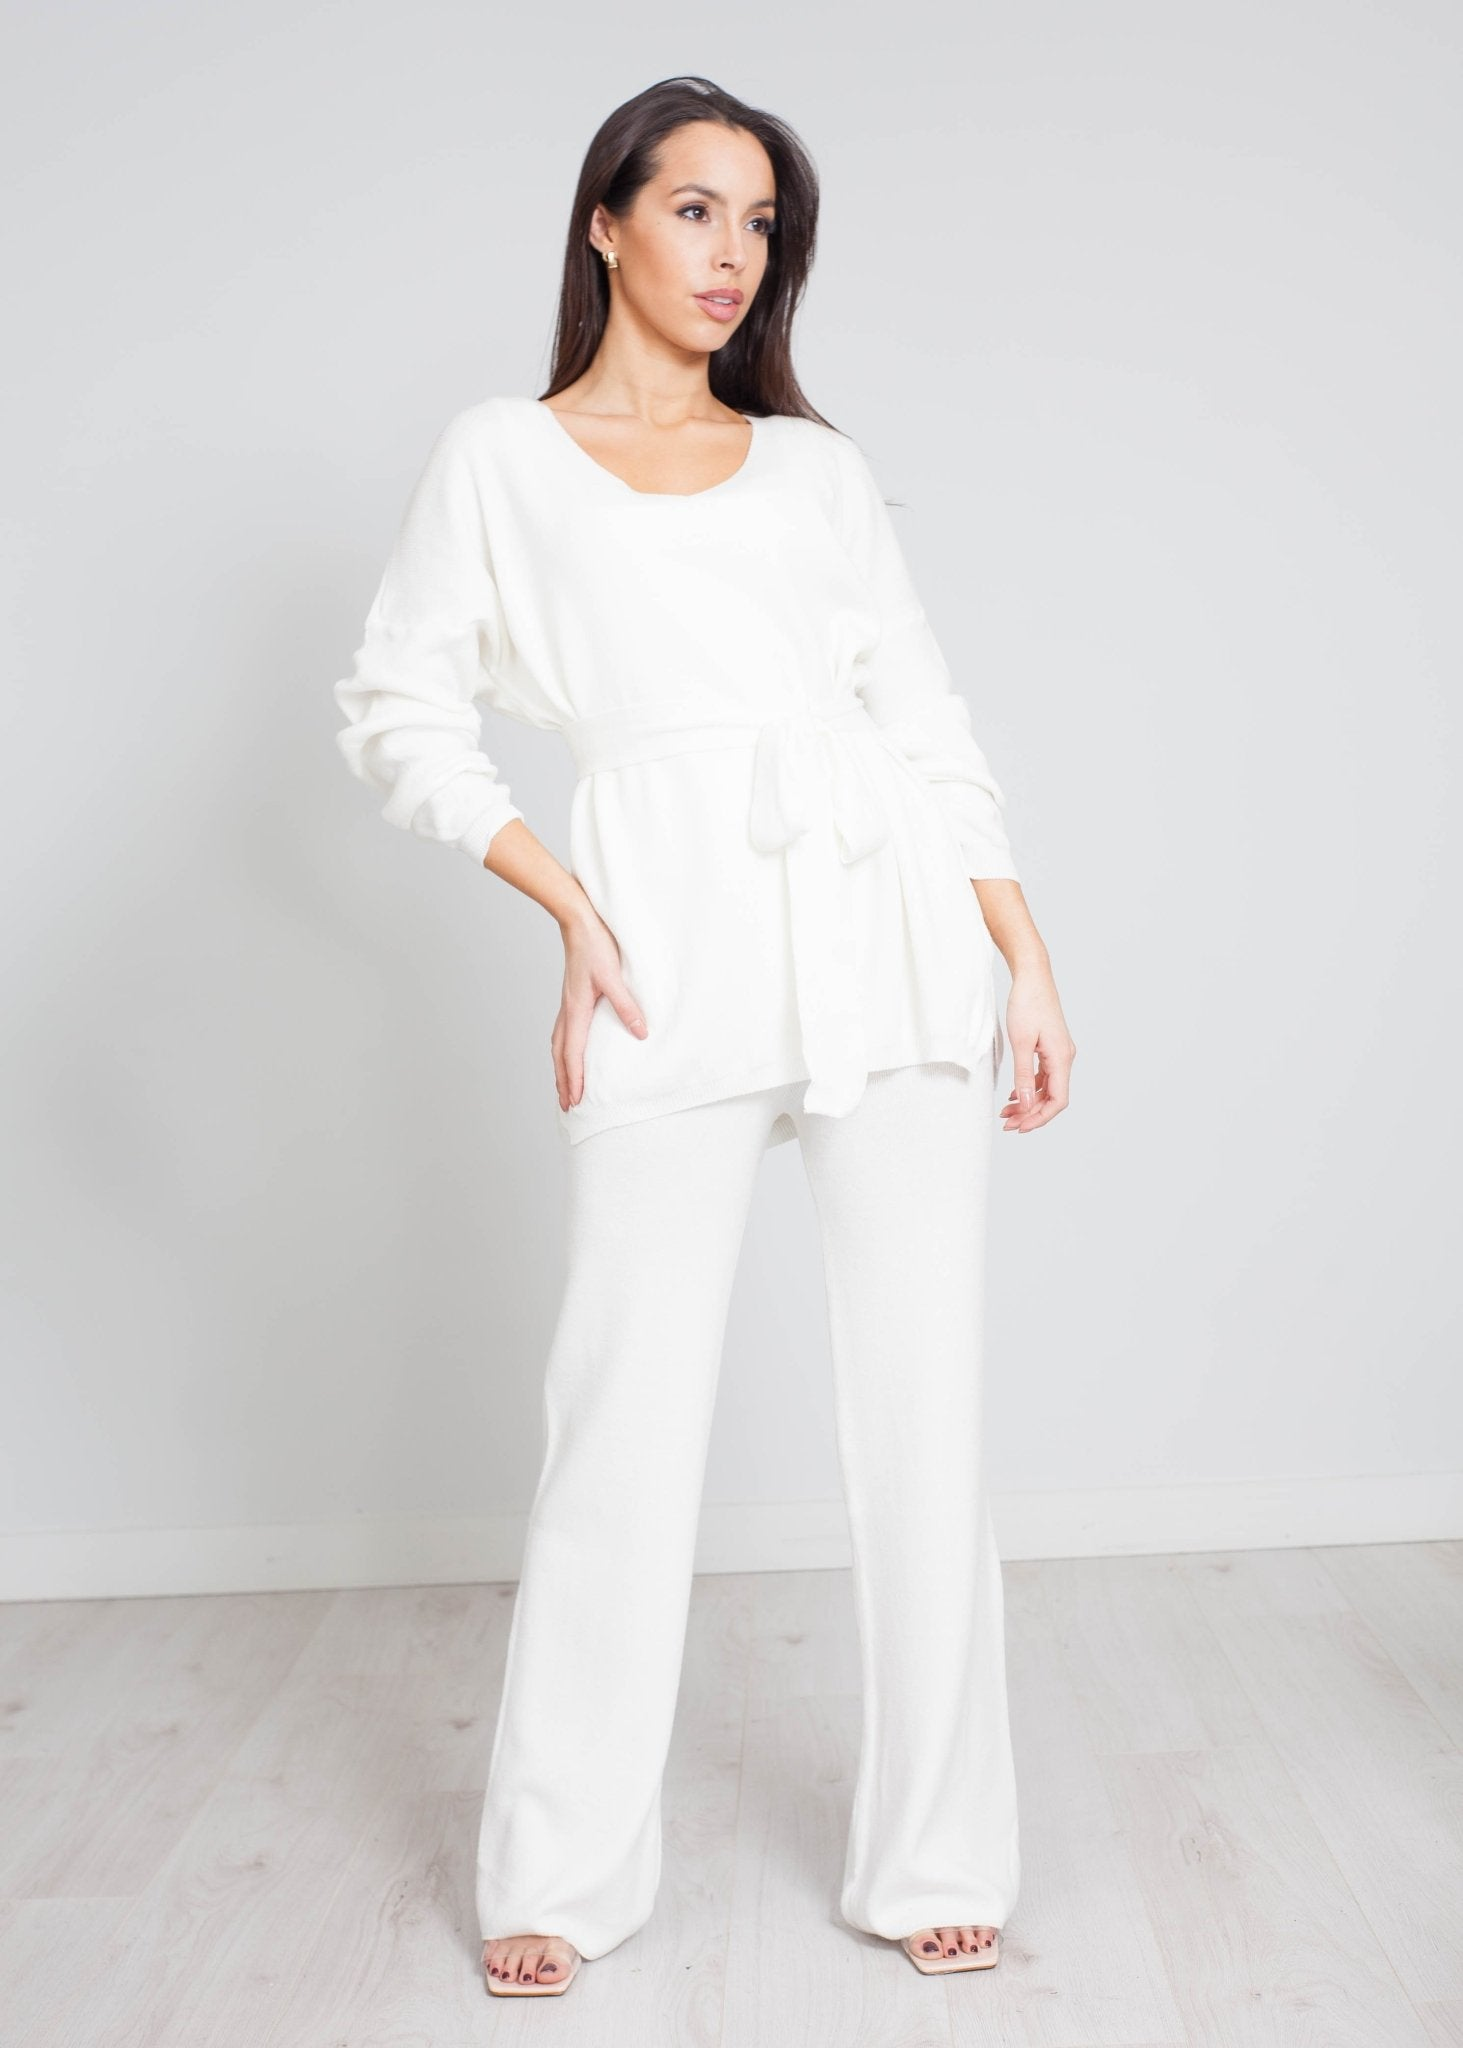 Indie V-Neck Knit Lounge Set In White - The Walk in Wardrobe